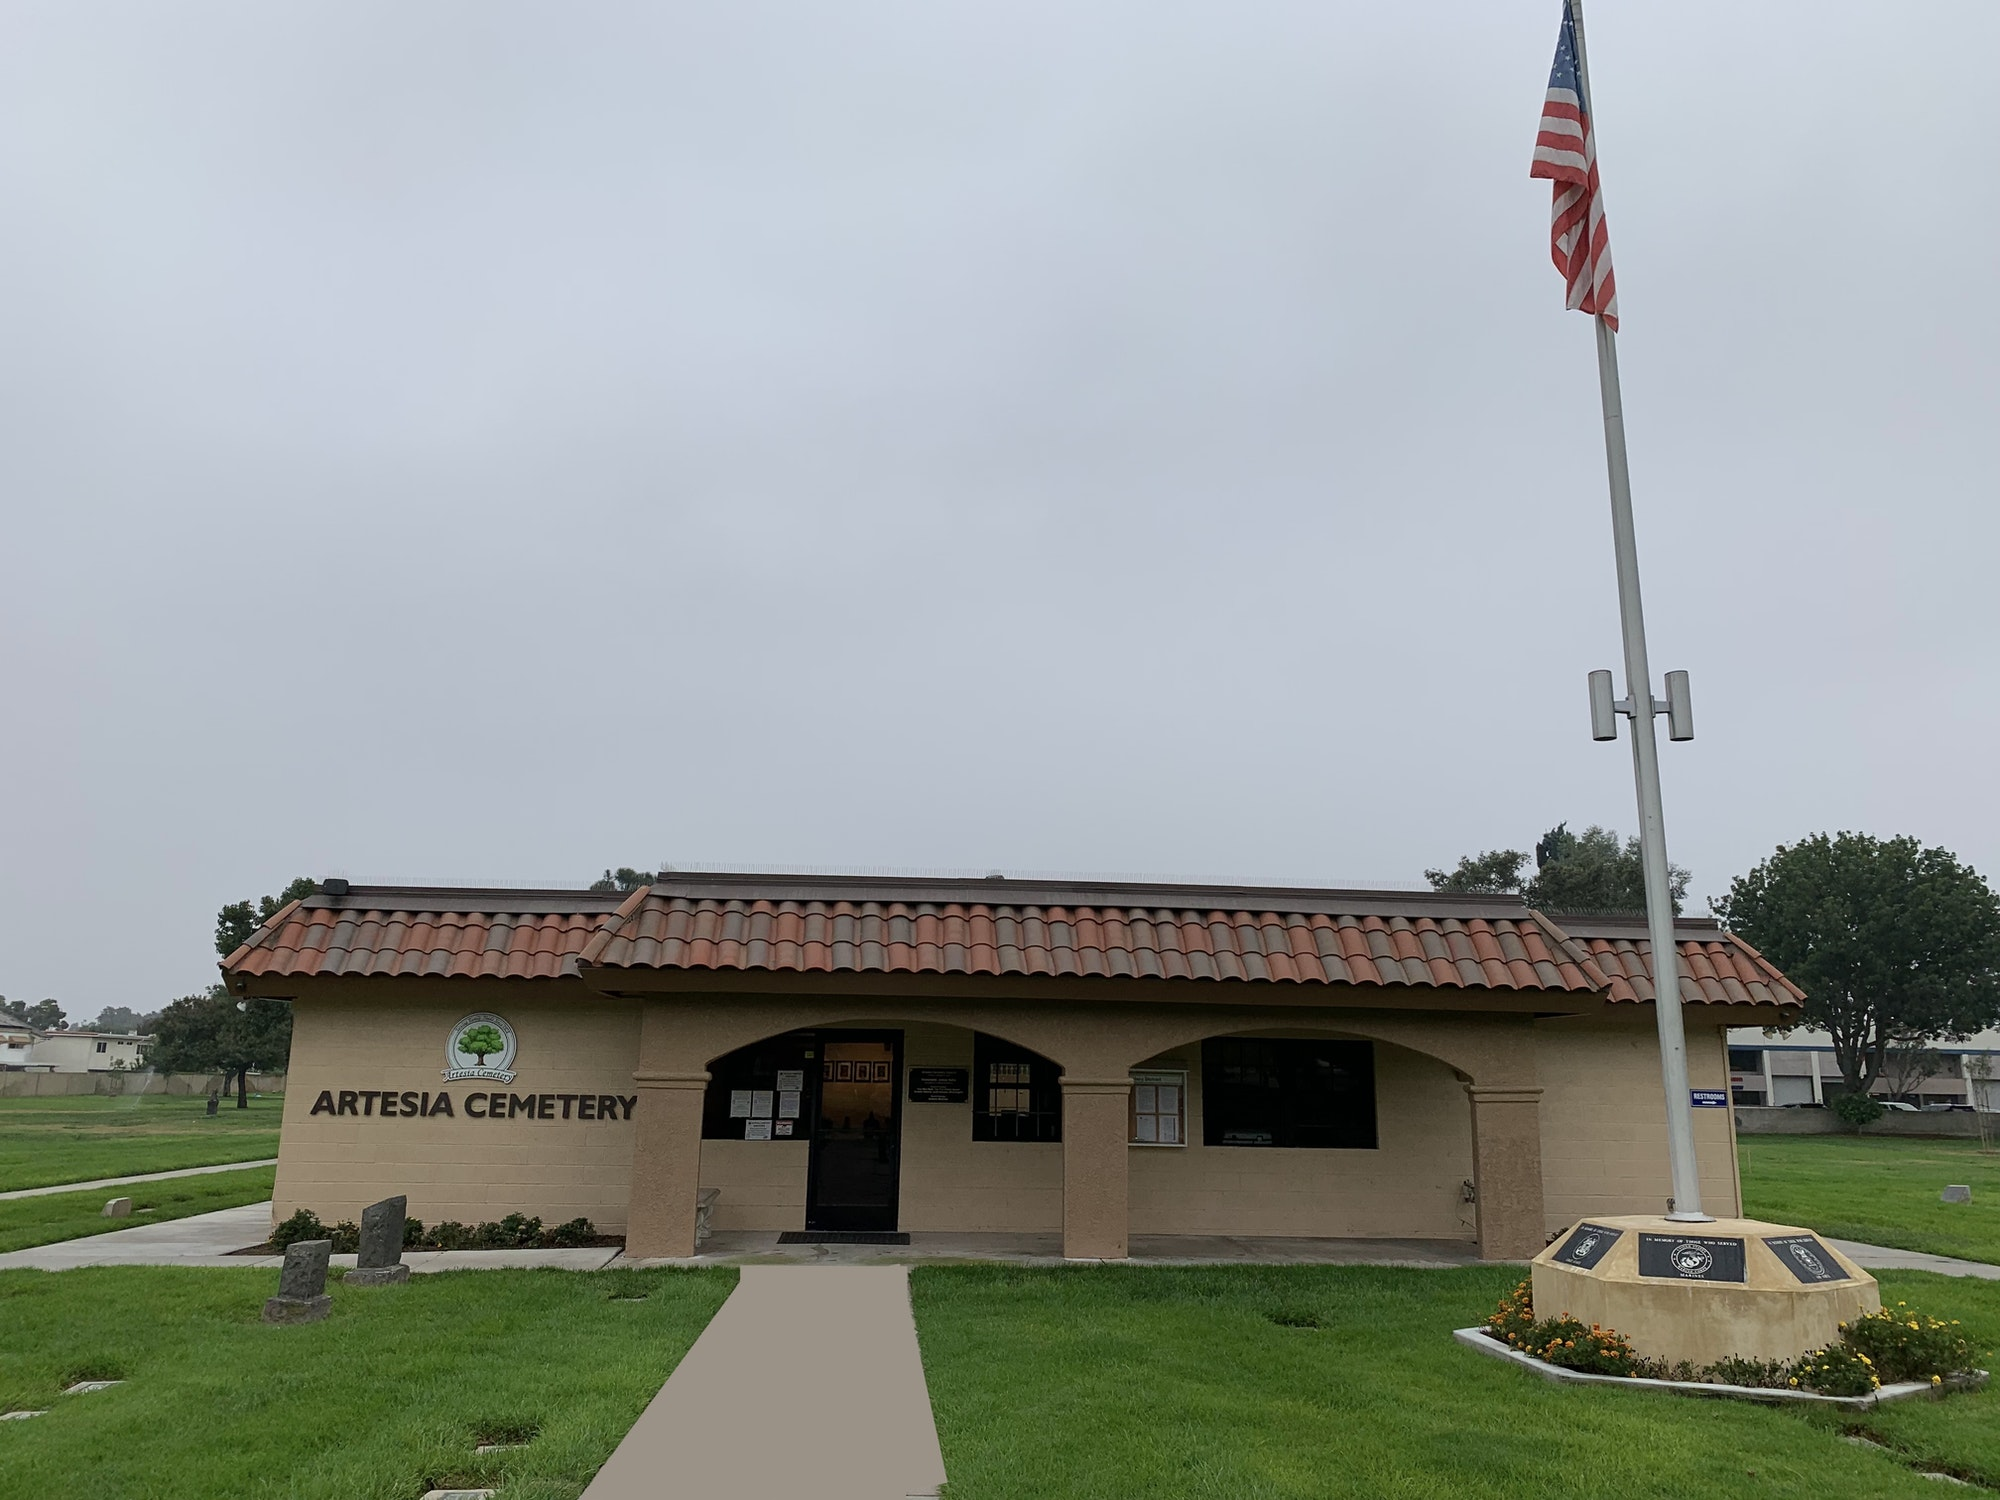 Front picture of cemetery office building